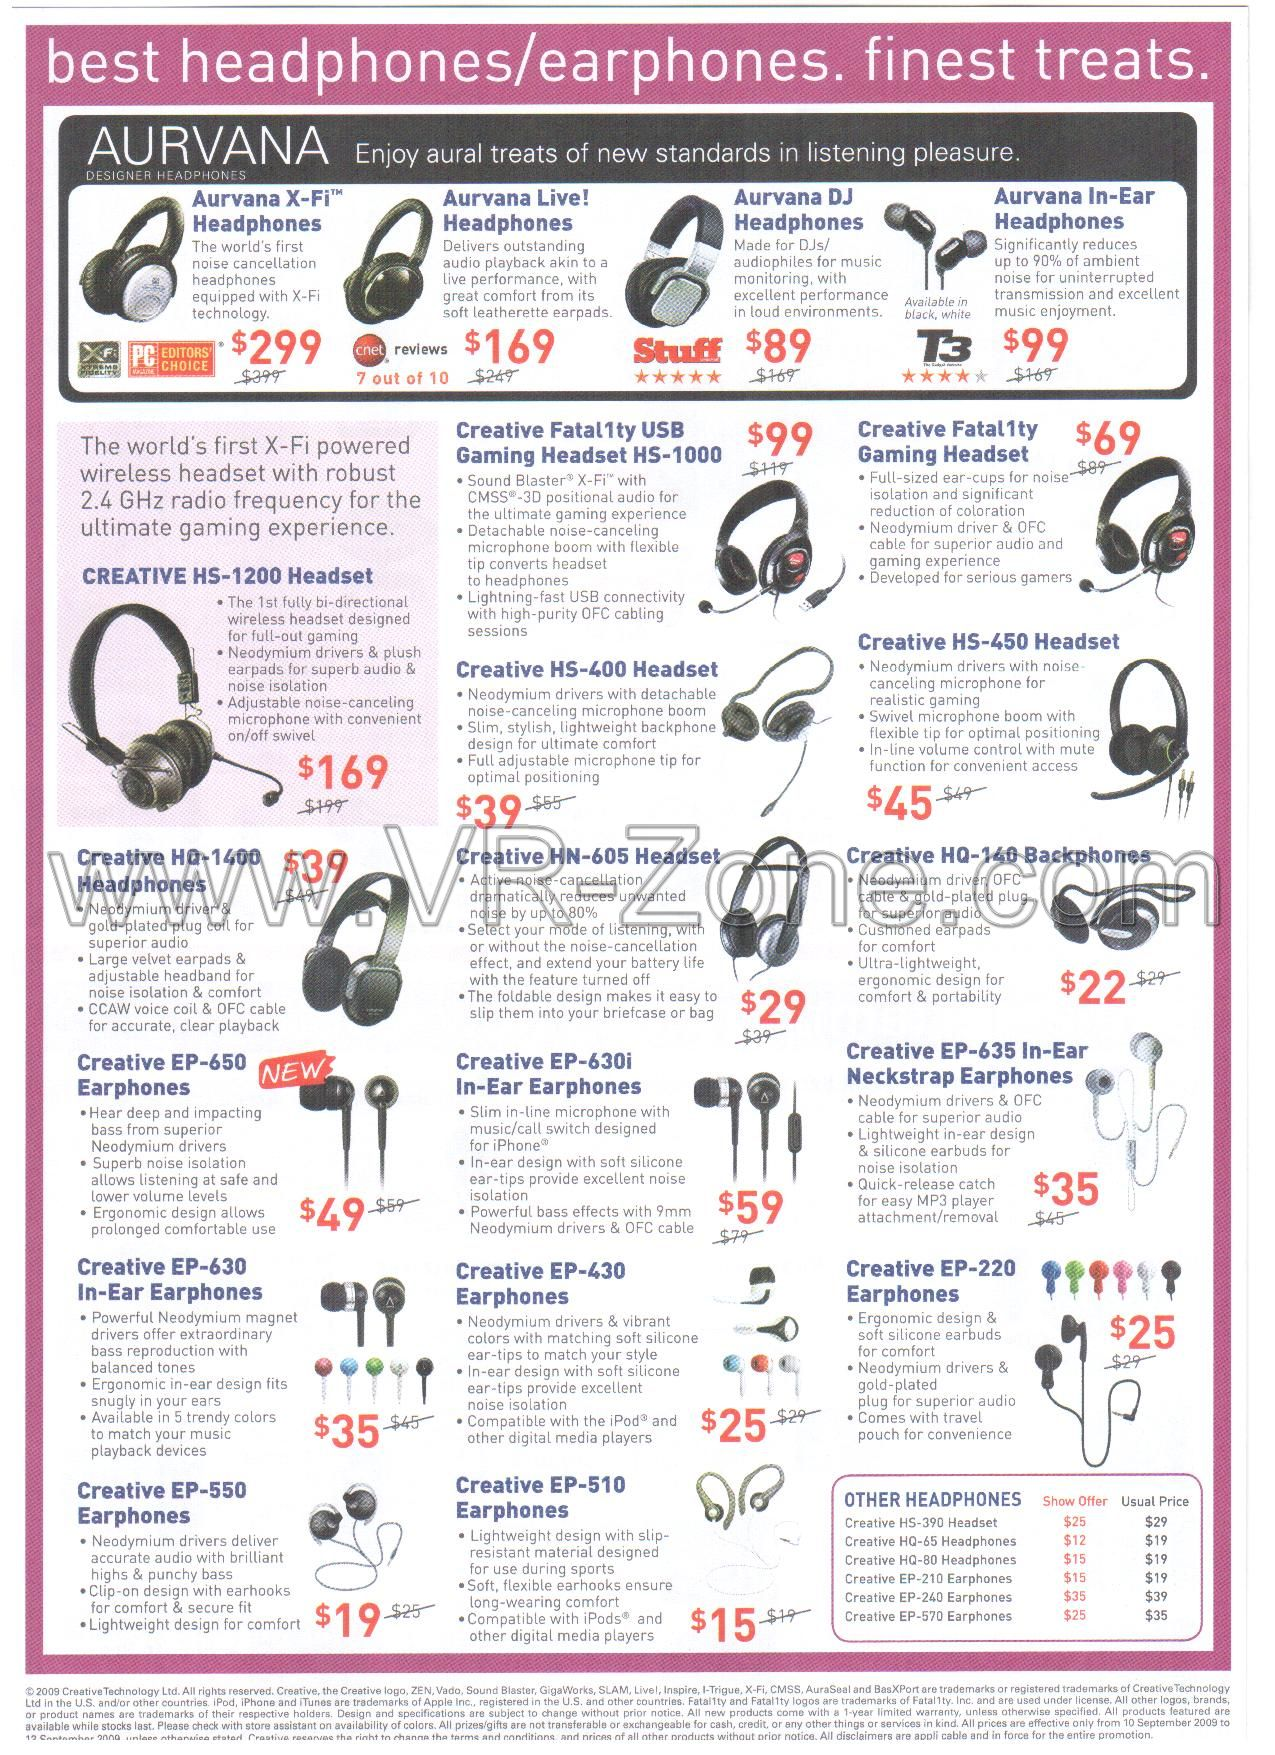 Comex 2009 price list image brochure of Creative Headphones Earphones Aurvana Headset EP